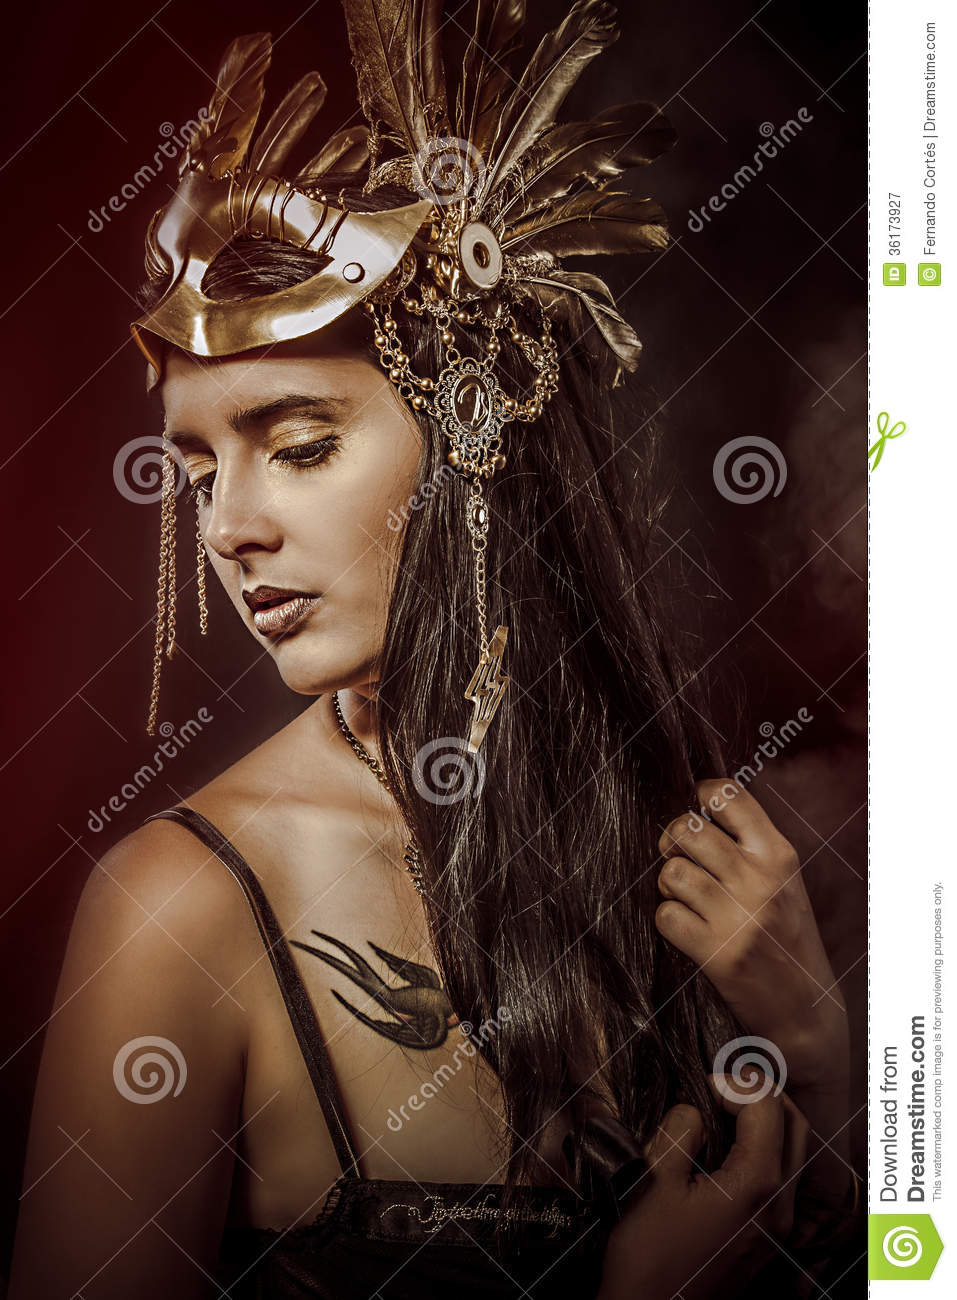 Download Mystery Queen : download, mystery, queen, Mystery, Queen,, Young, Golden, Mask,, Ancient, Goddess, Stock, Image, Head,, Fairytale:, 36173927